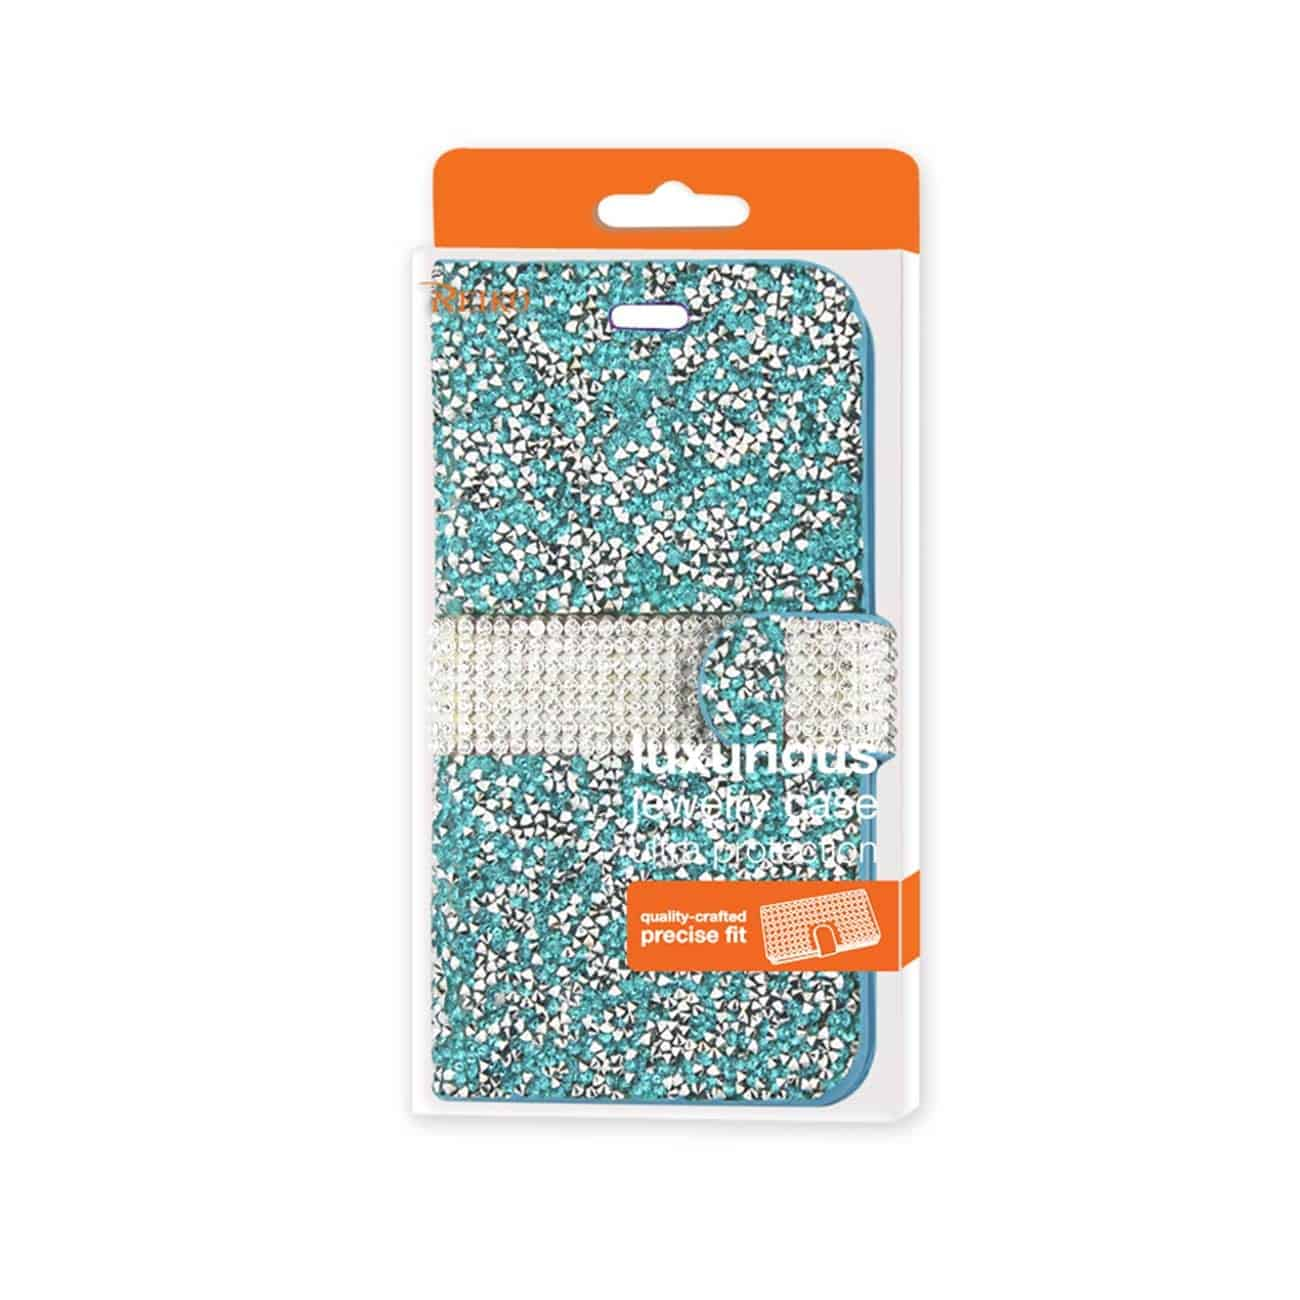 IPHONE 6 DIAMOND RHINESTONE WALLET CASE IN BLUE